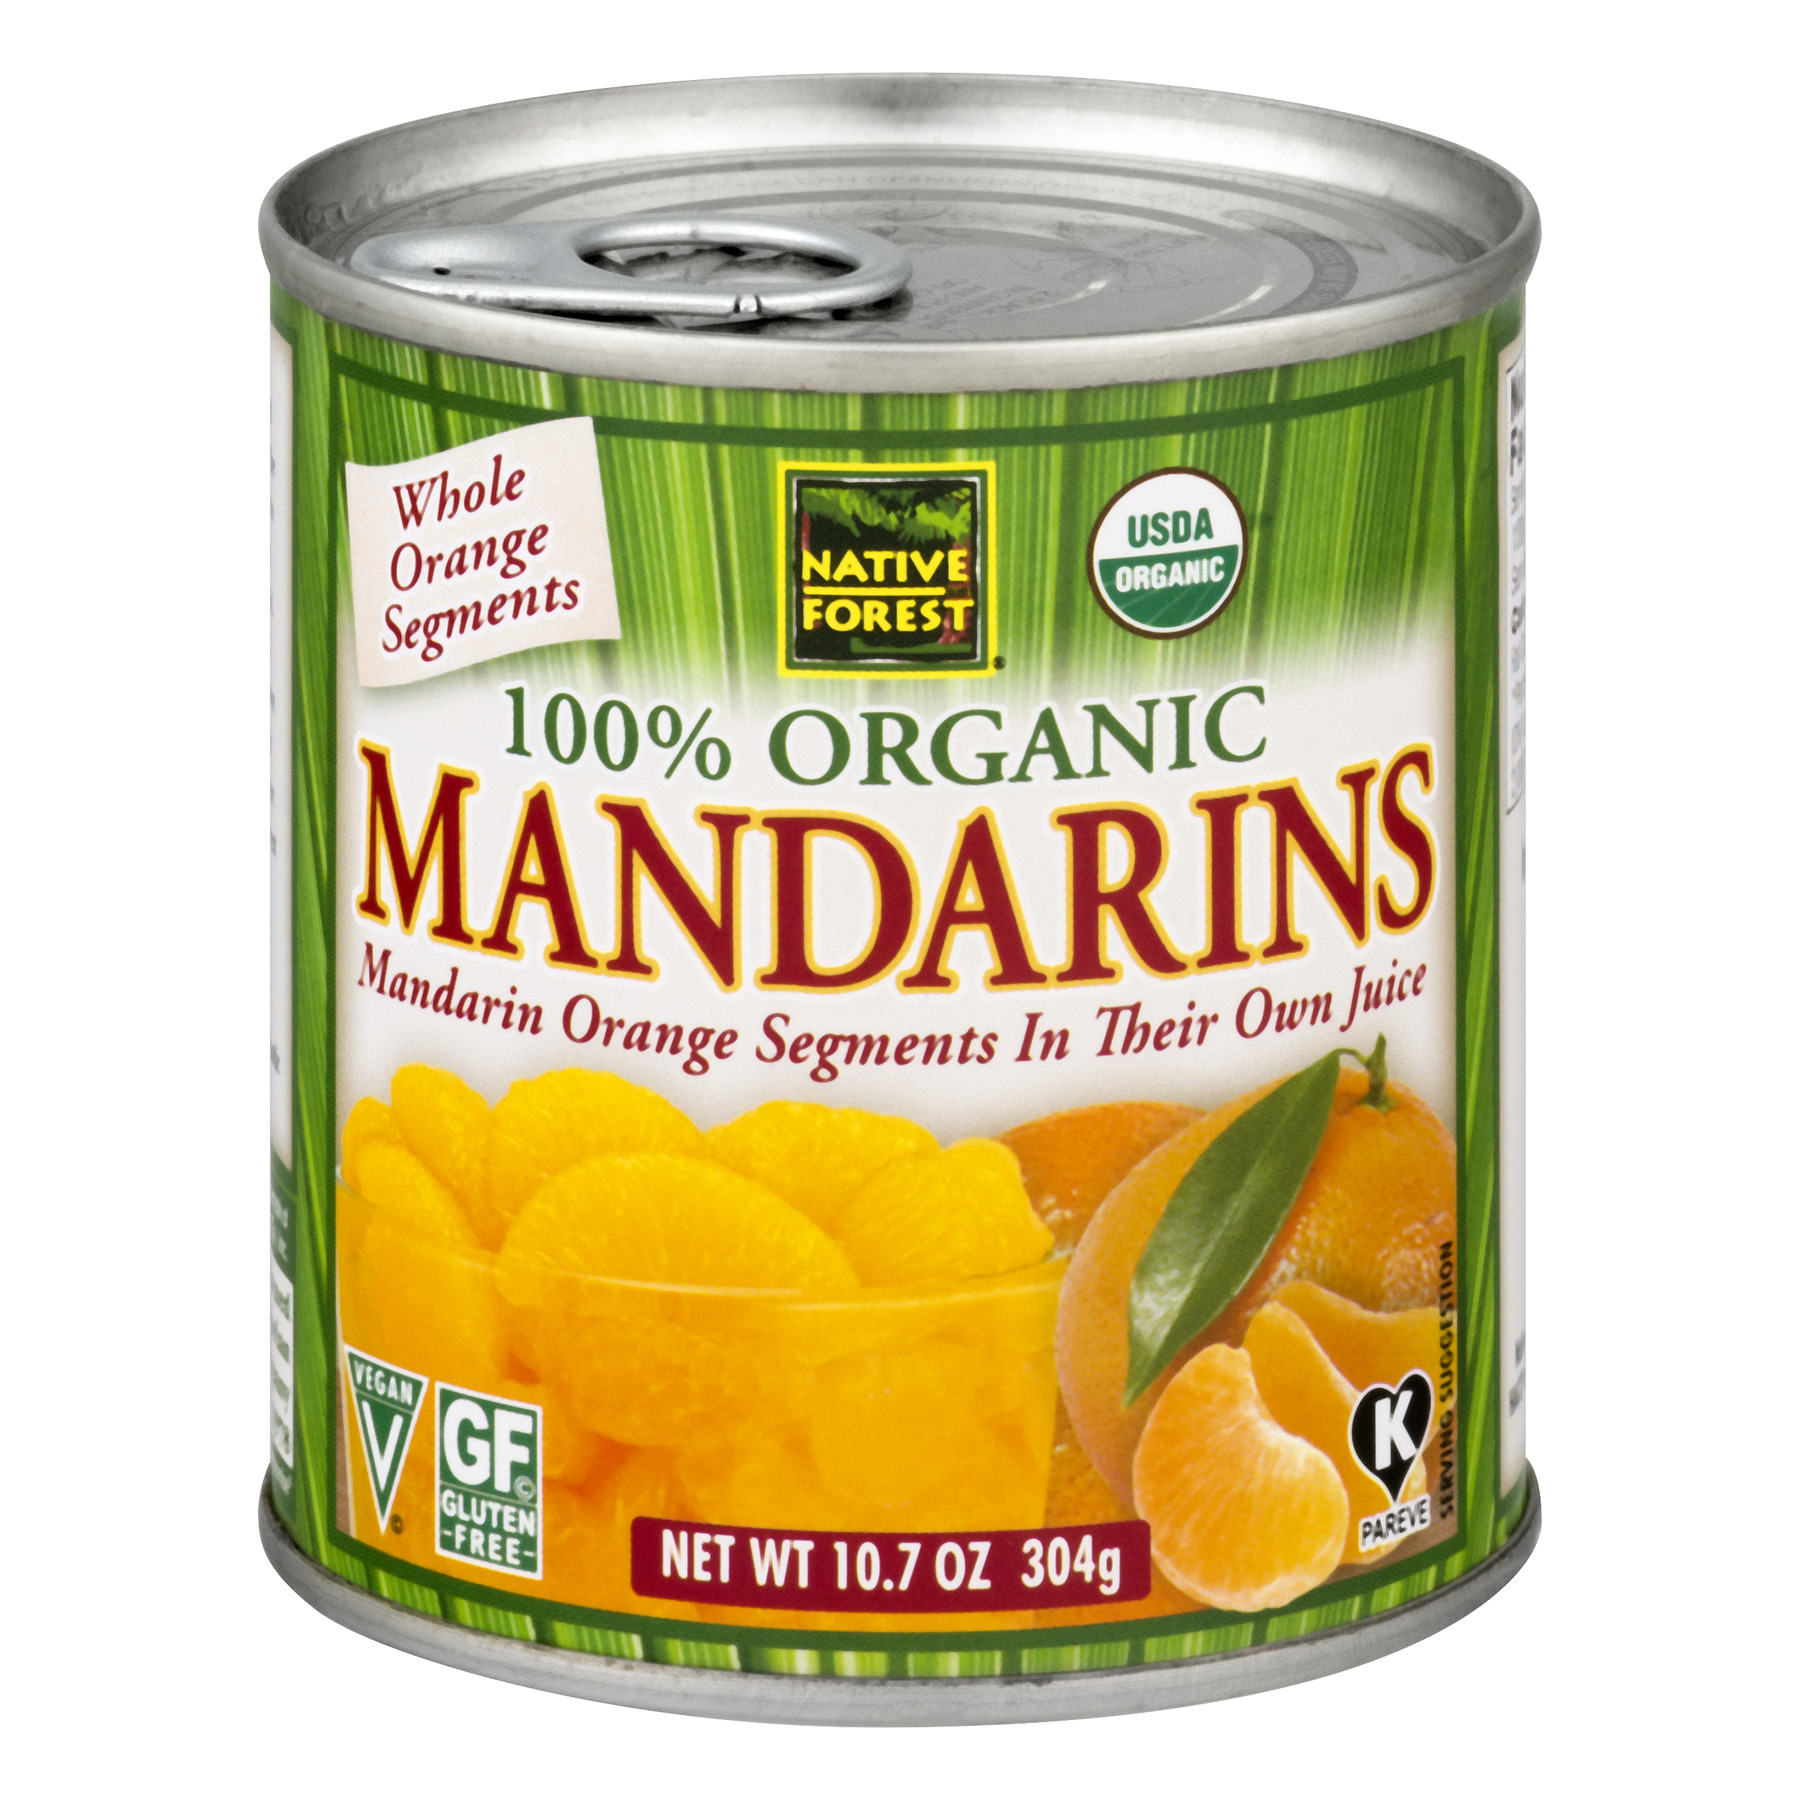 Native Forest 100% Organic Mandarins, 10.7 OZ